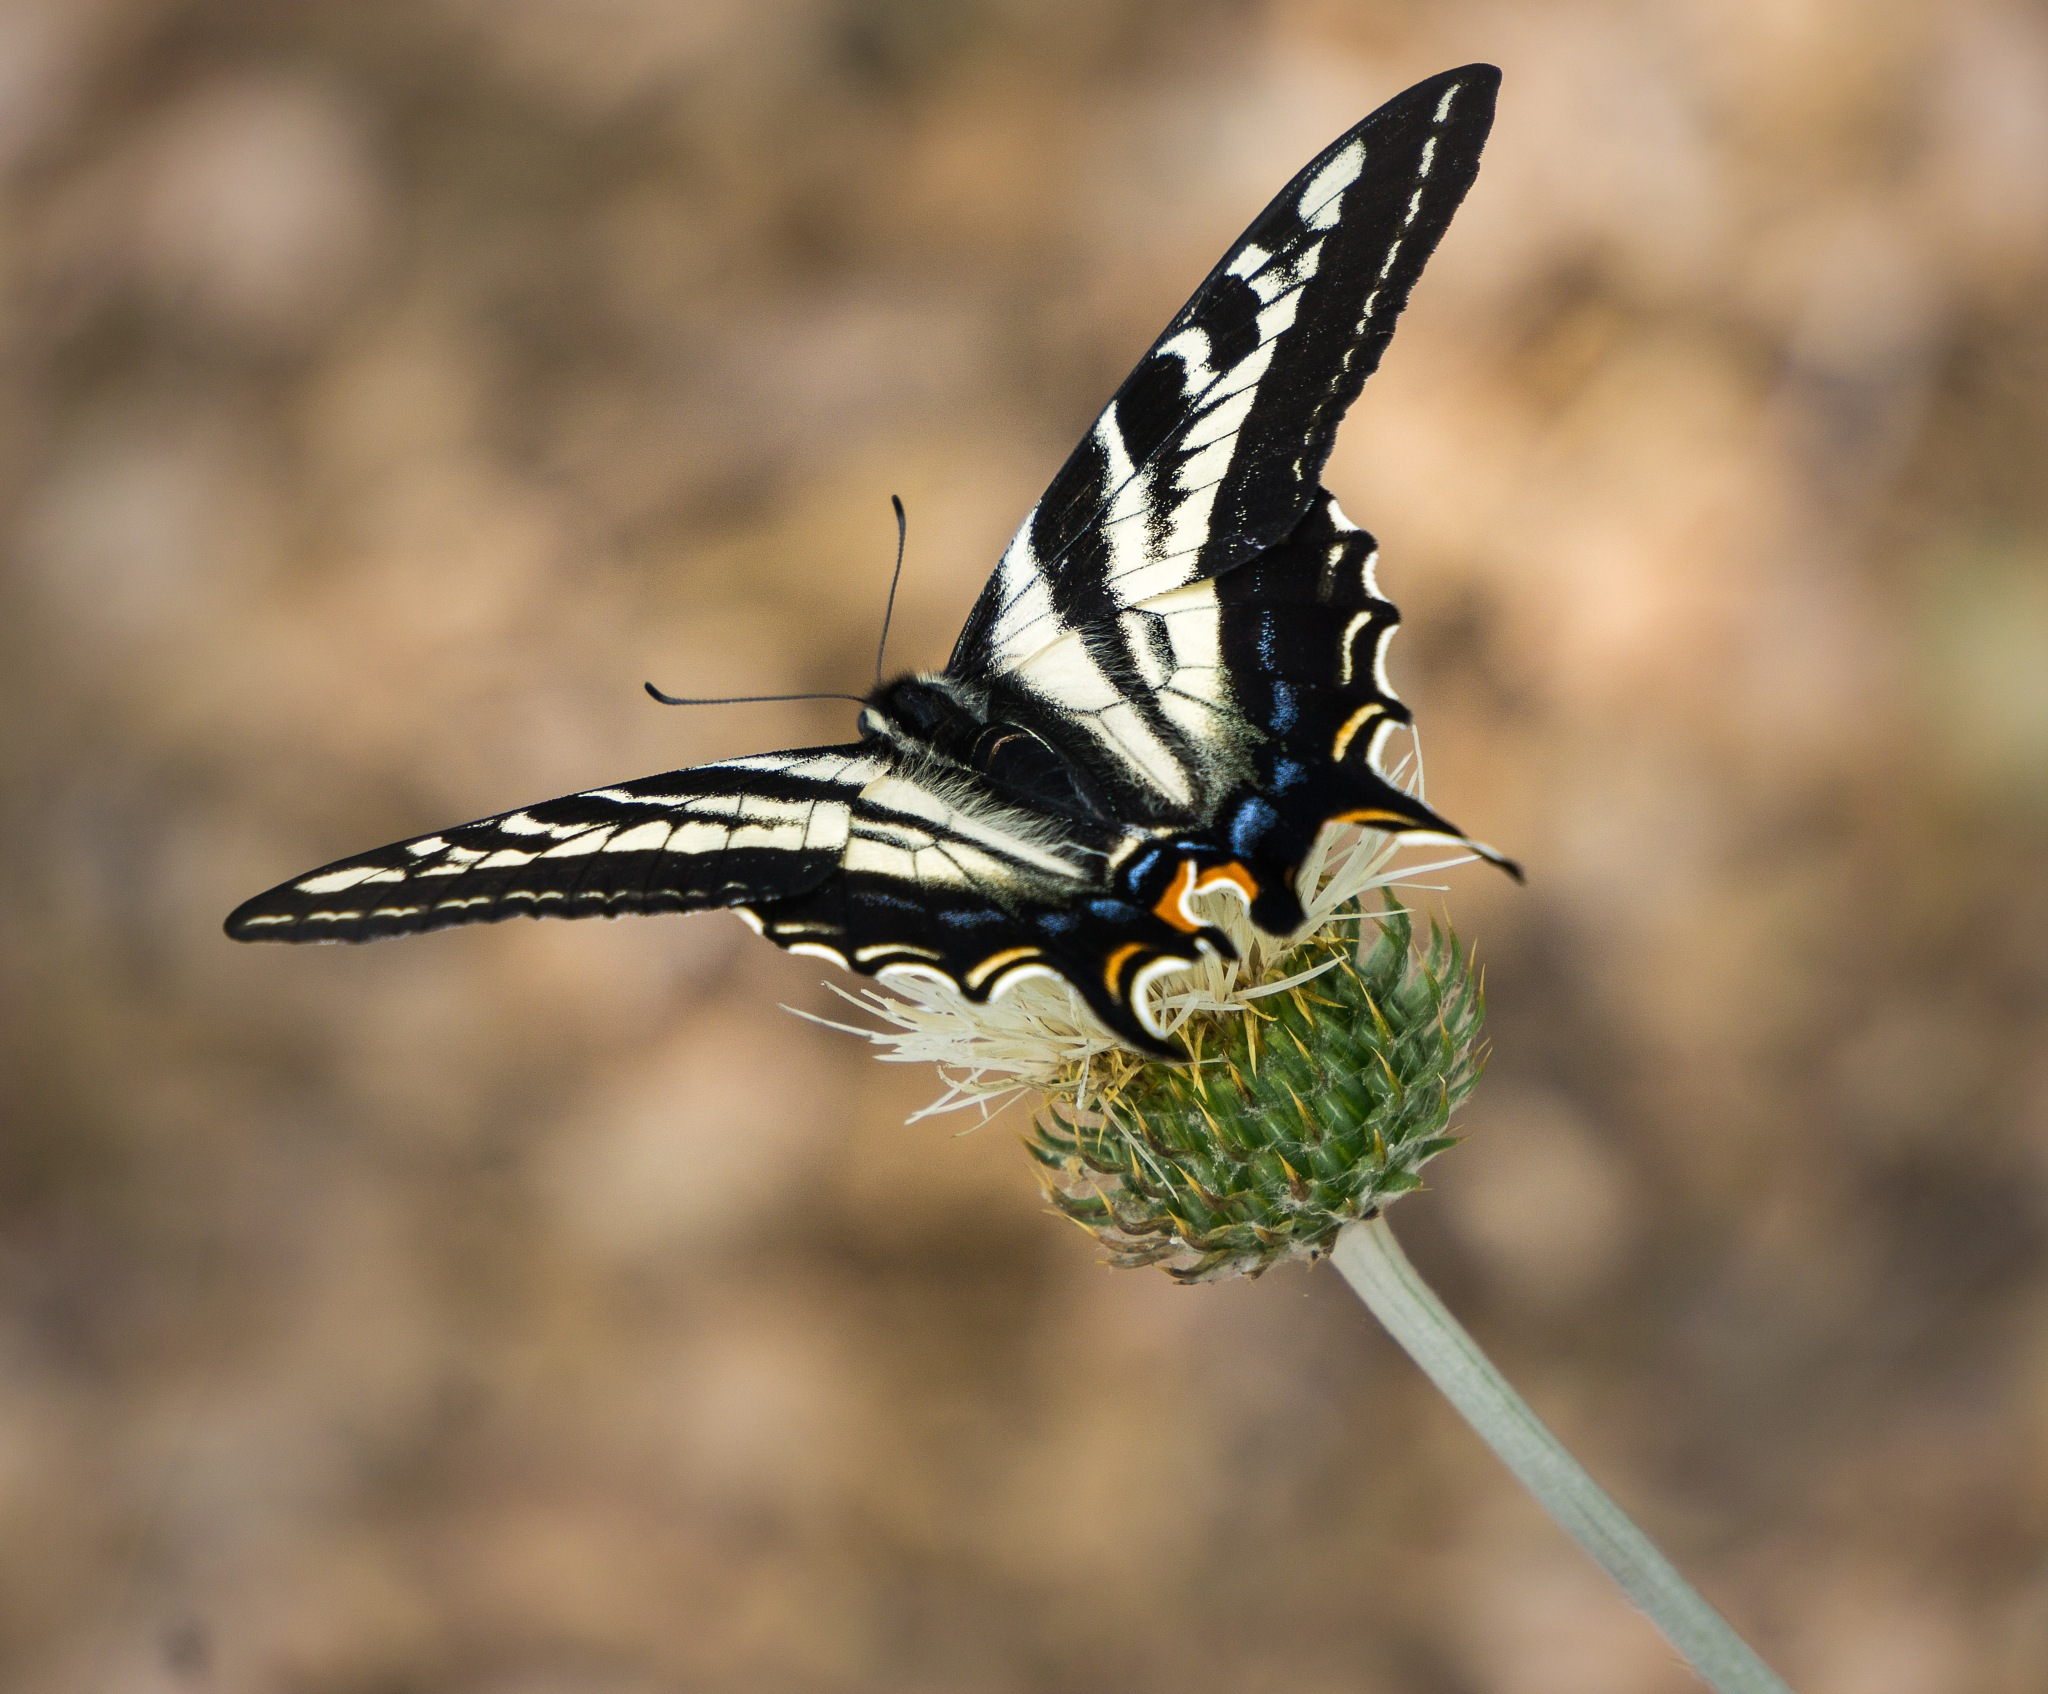 Butterfly on Thistle by Michael Sheltzer